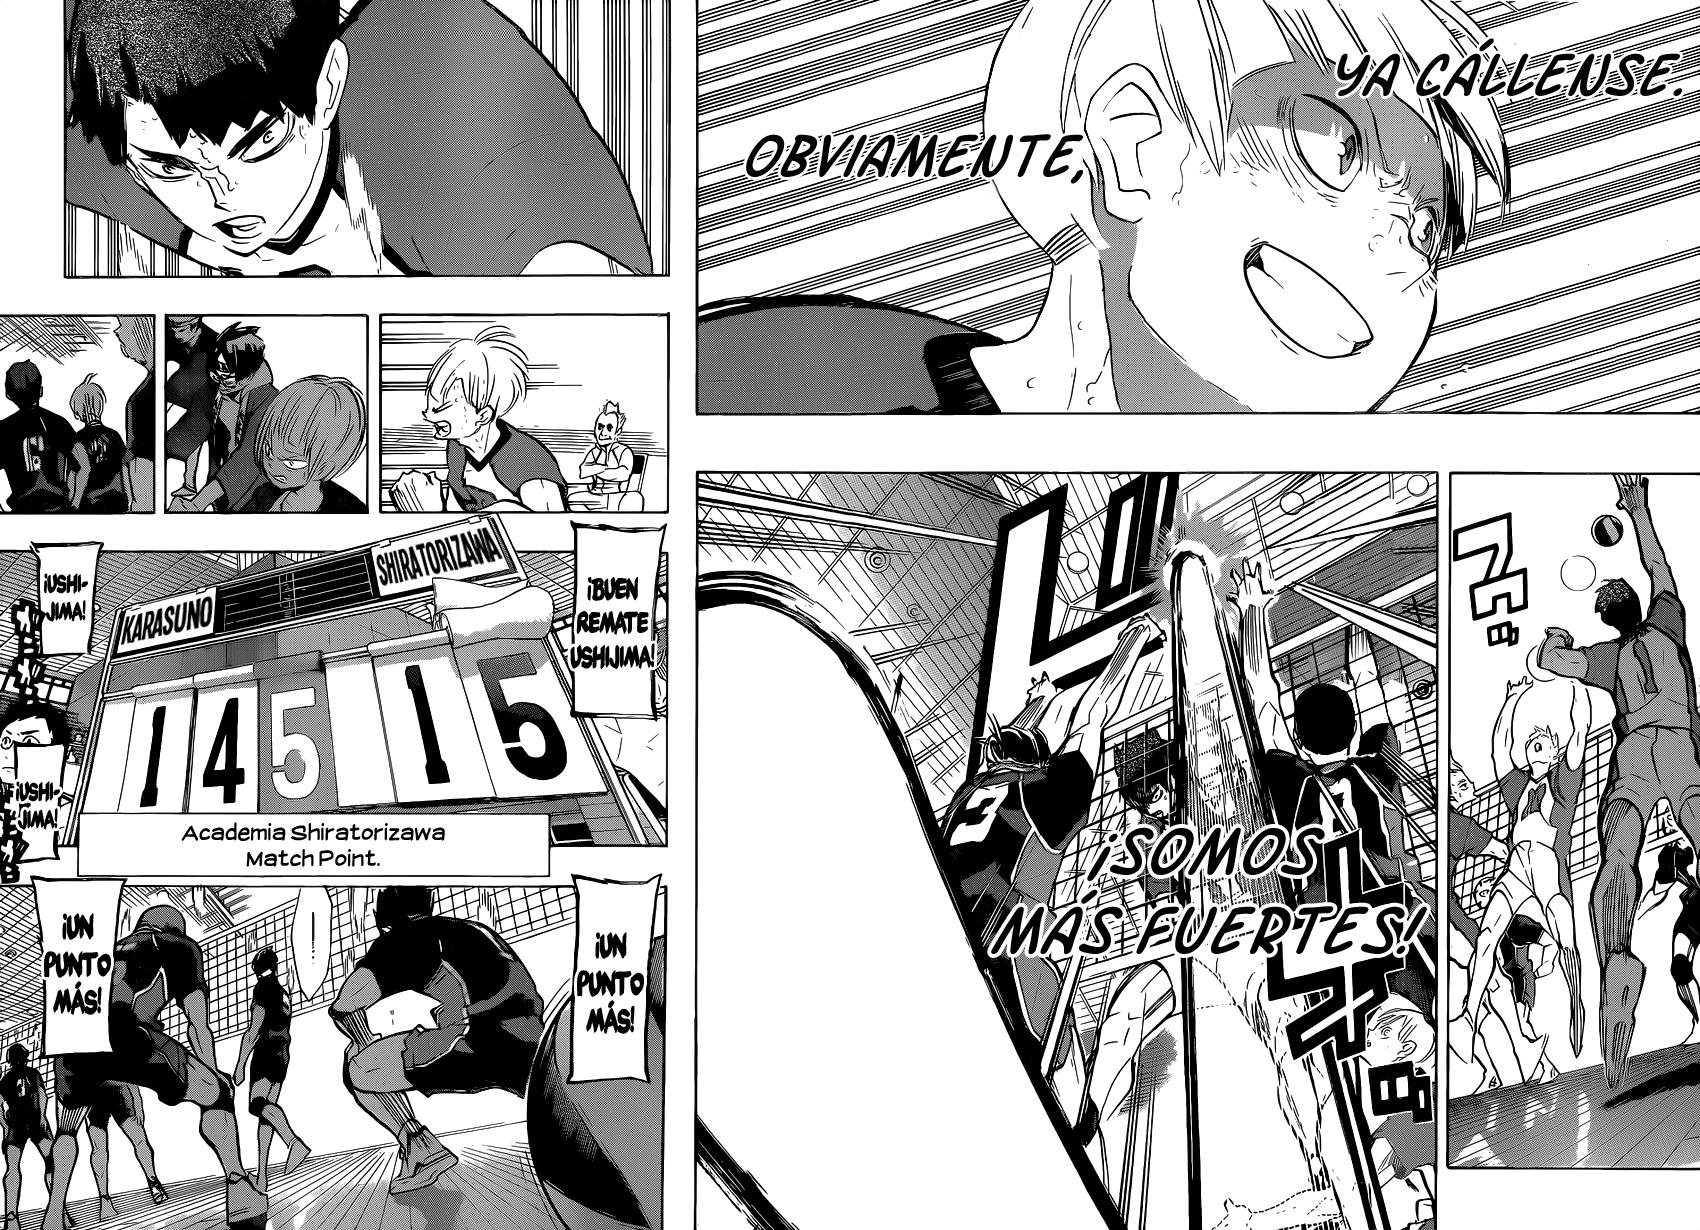 http://c5.ninemanga.com/es_manga/10/10/431140/f1676935f9304b97d59b0738289d2e22.jpg Page 16